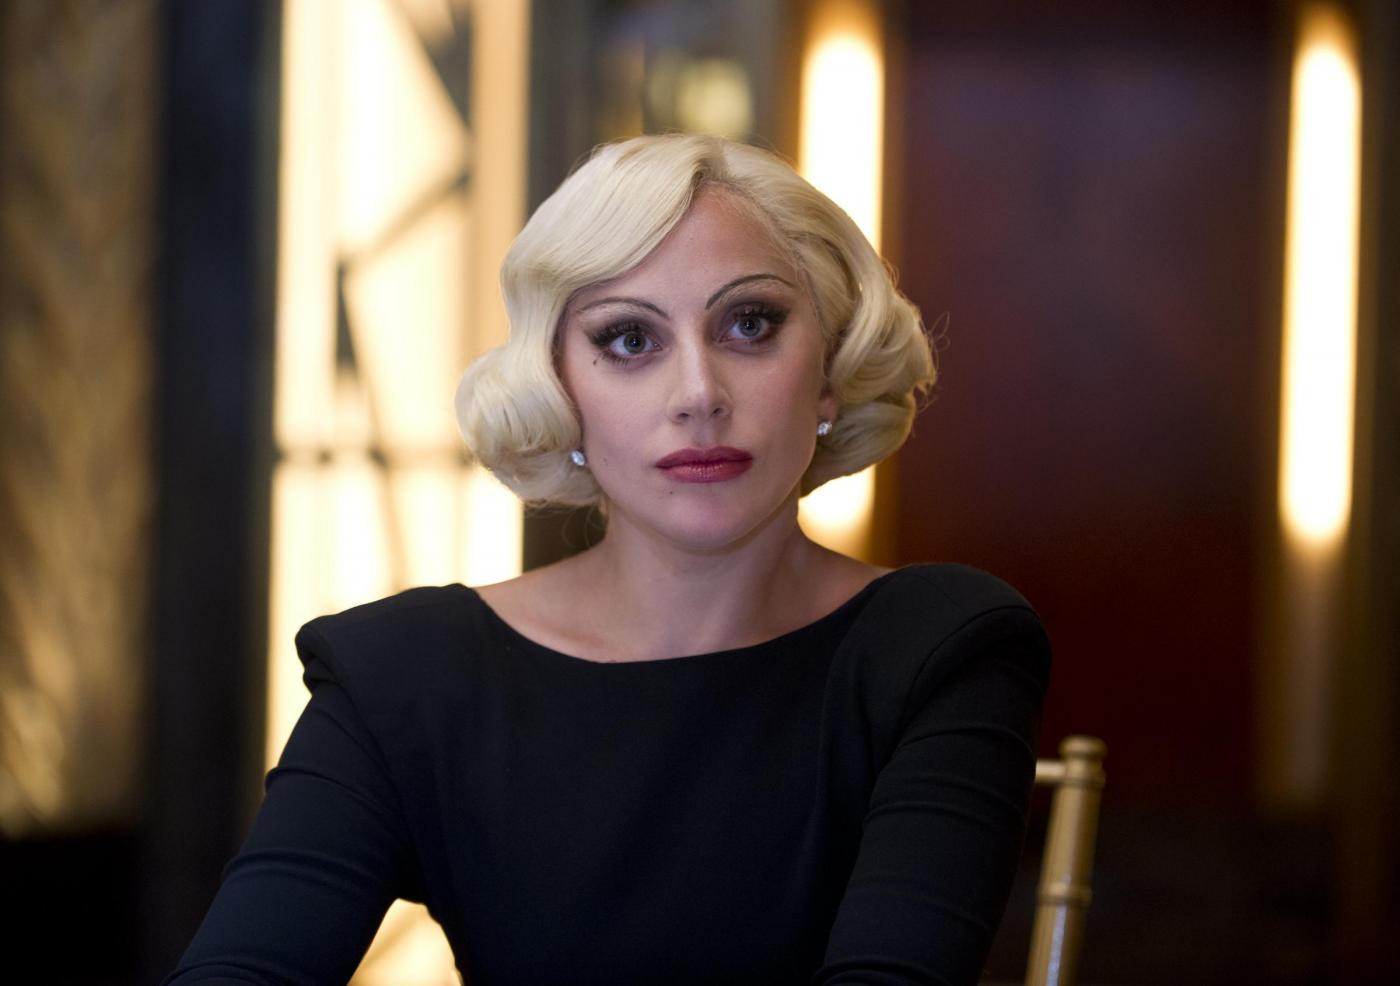 Lady Gaga in conferenza stampa